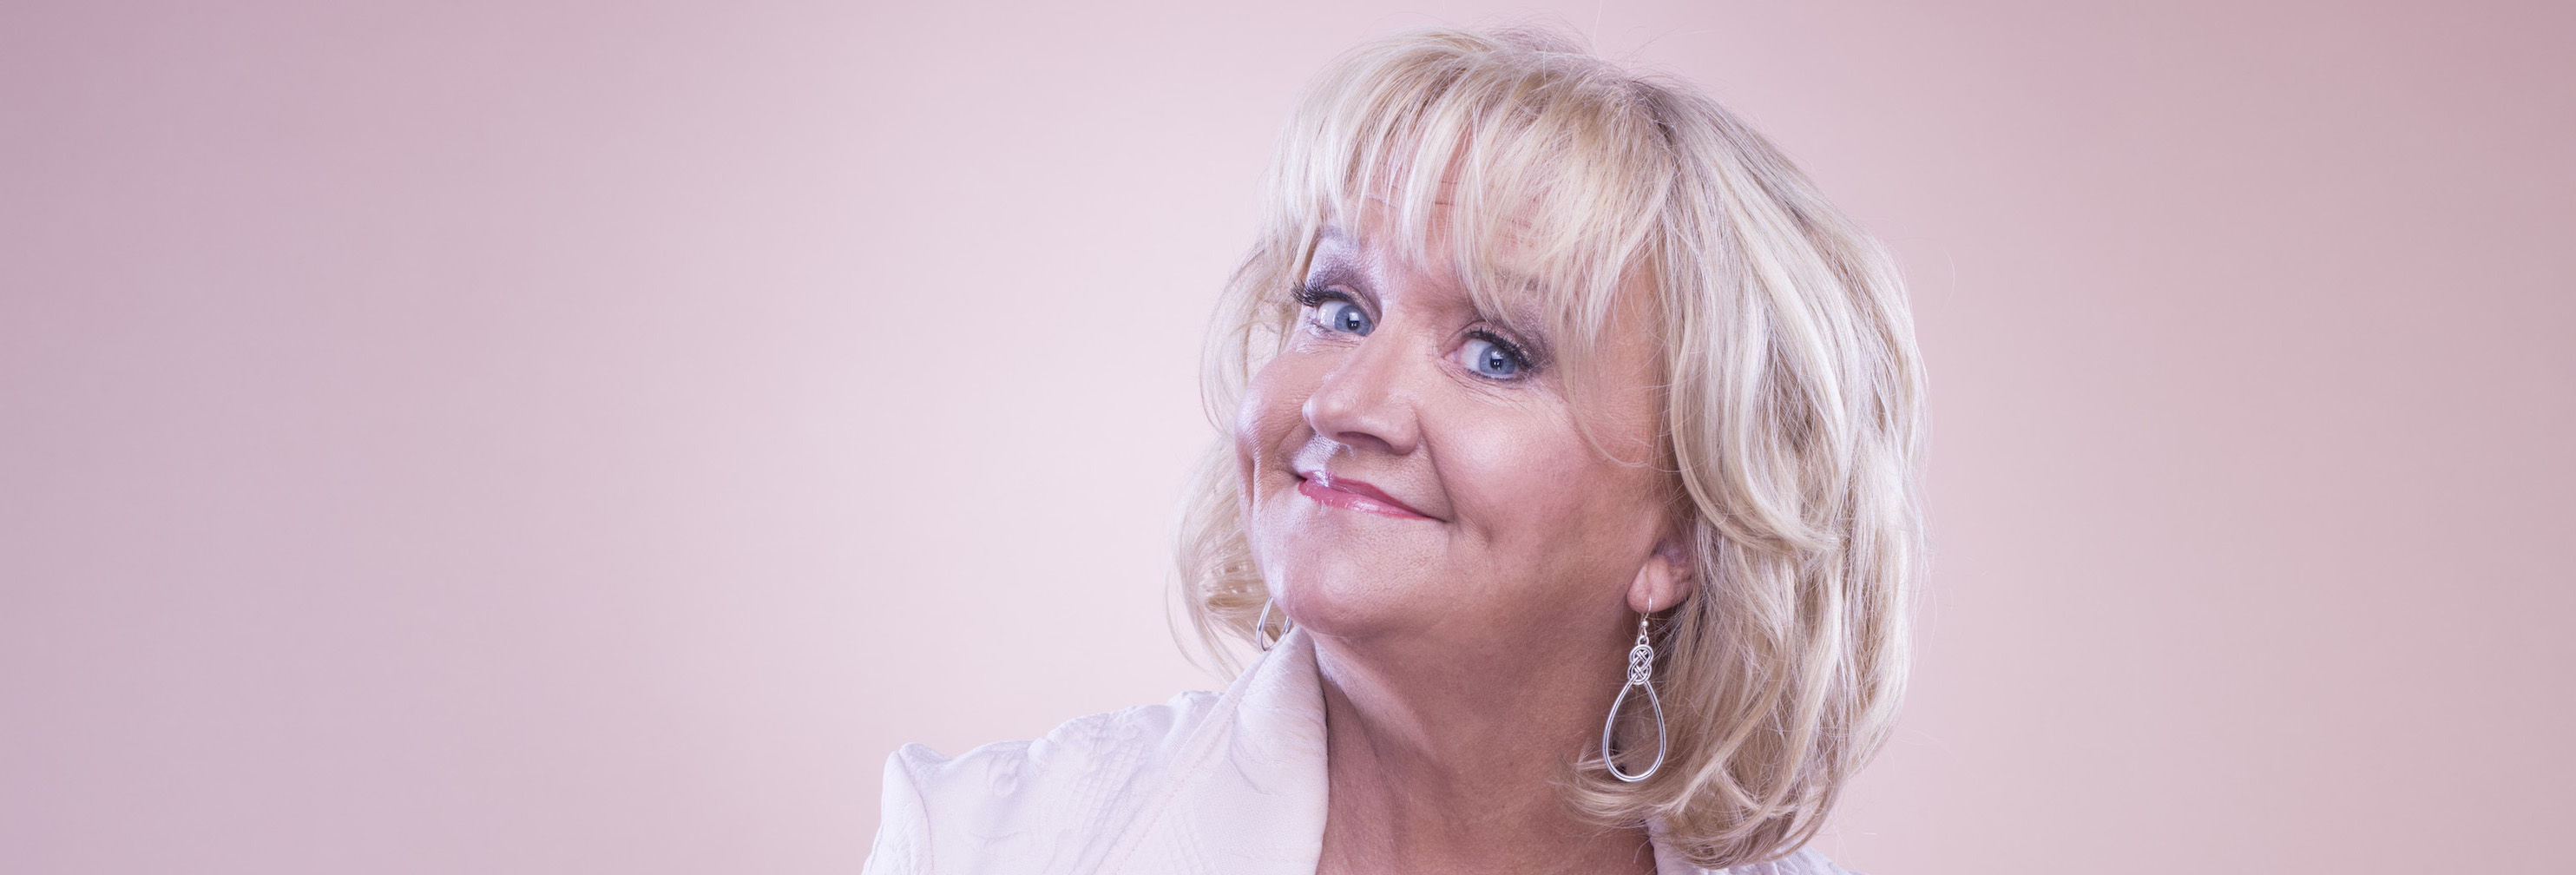 CHONDA PIERCE IS MORE THAN 'ENOUGH' AT BOX OFFICE